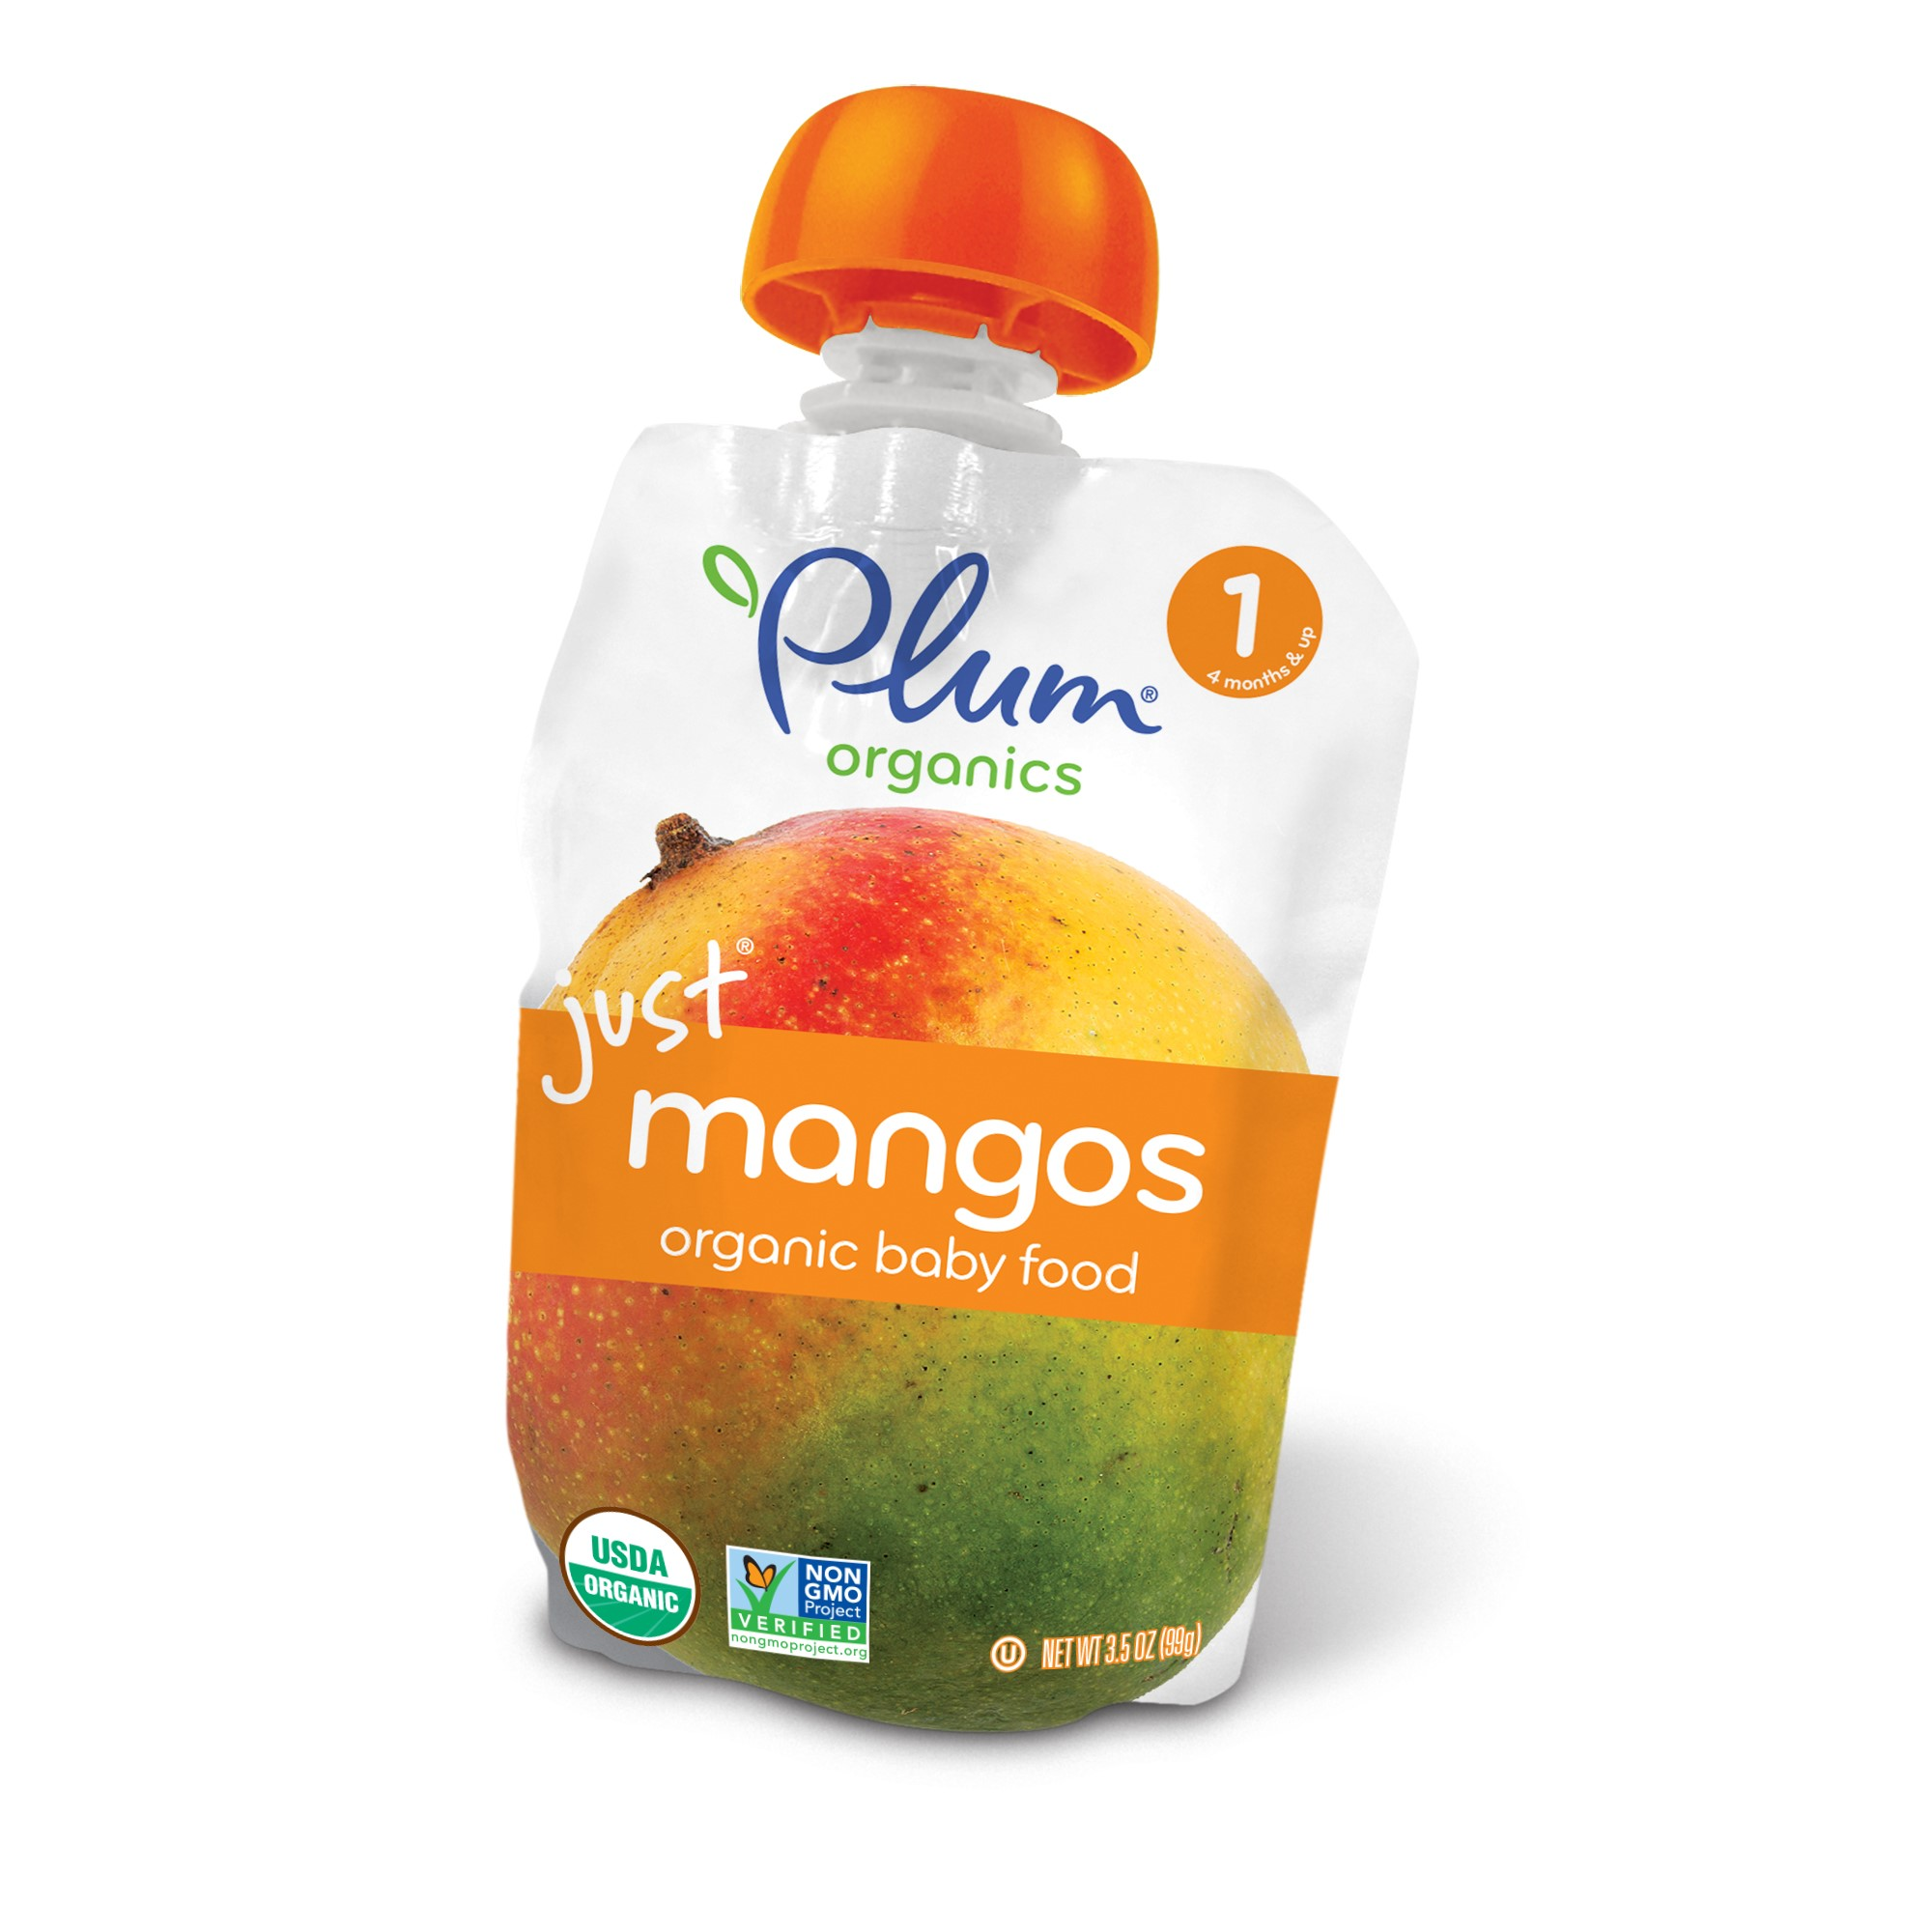 Plum Organics Organic Baby Food, Stage 1, Just Mangos, 3.5 Oz